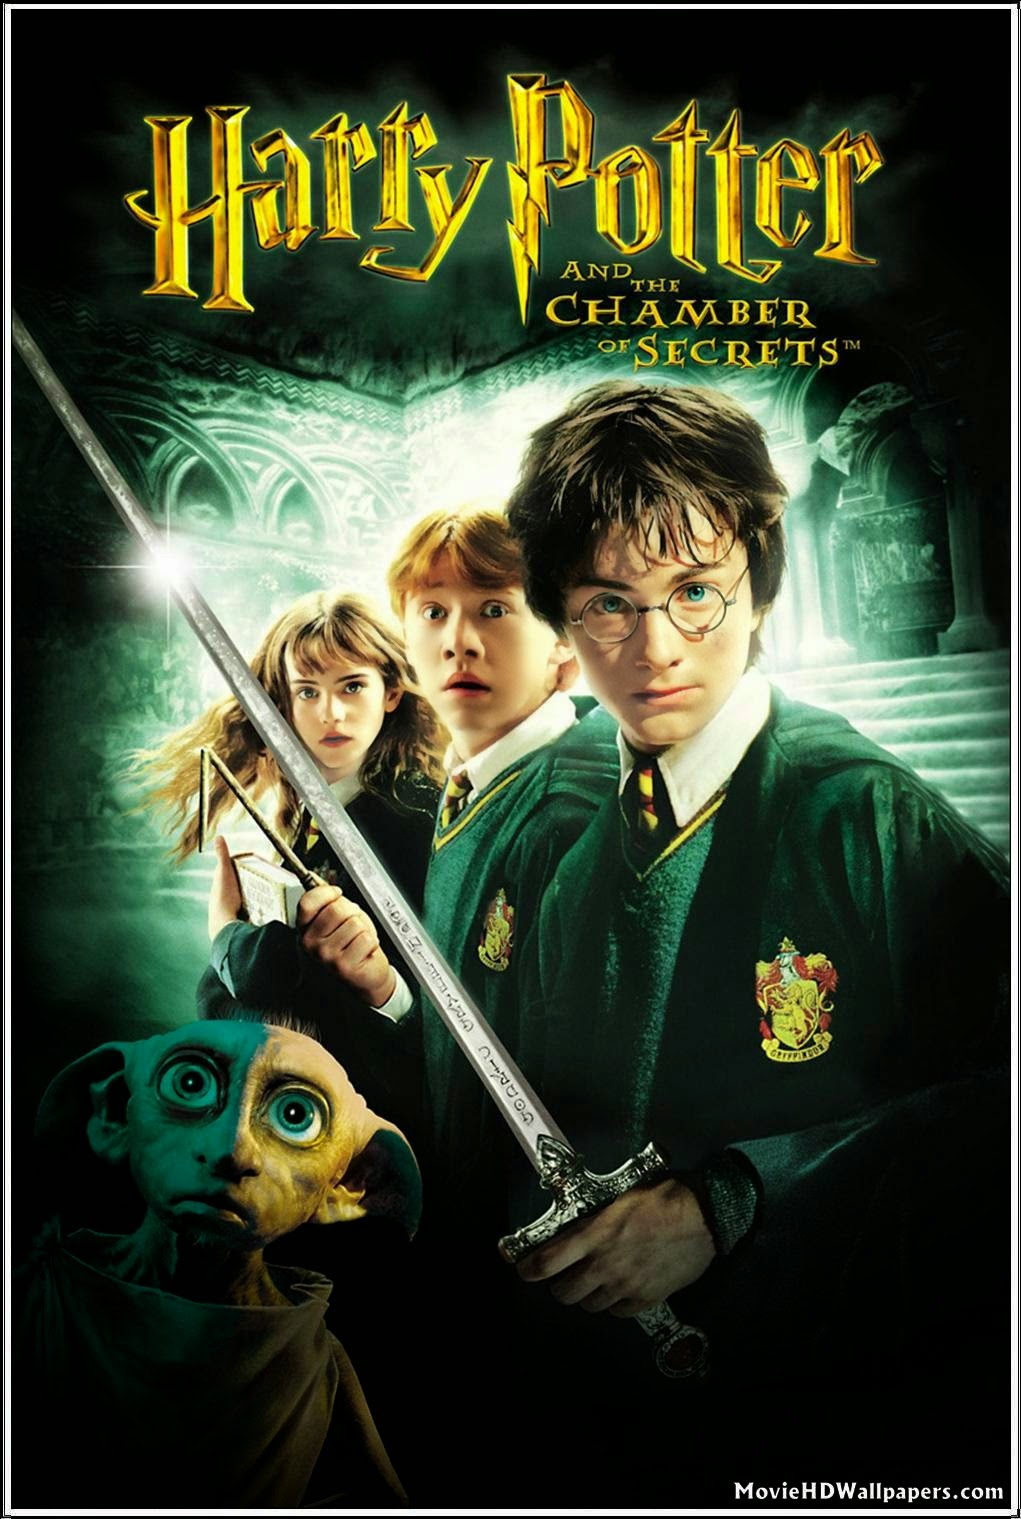 Watch Harry Potter and the Chamber of Secrets (2002) Full Movie Online For Free English Stream